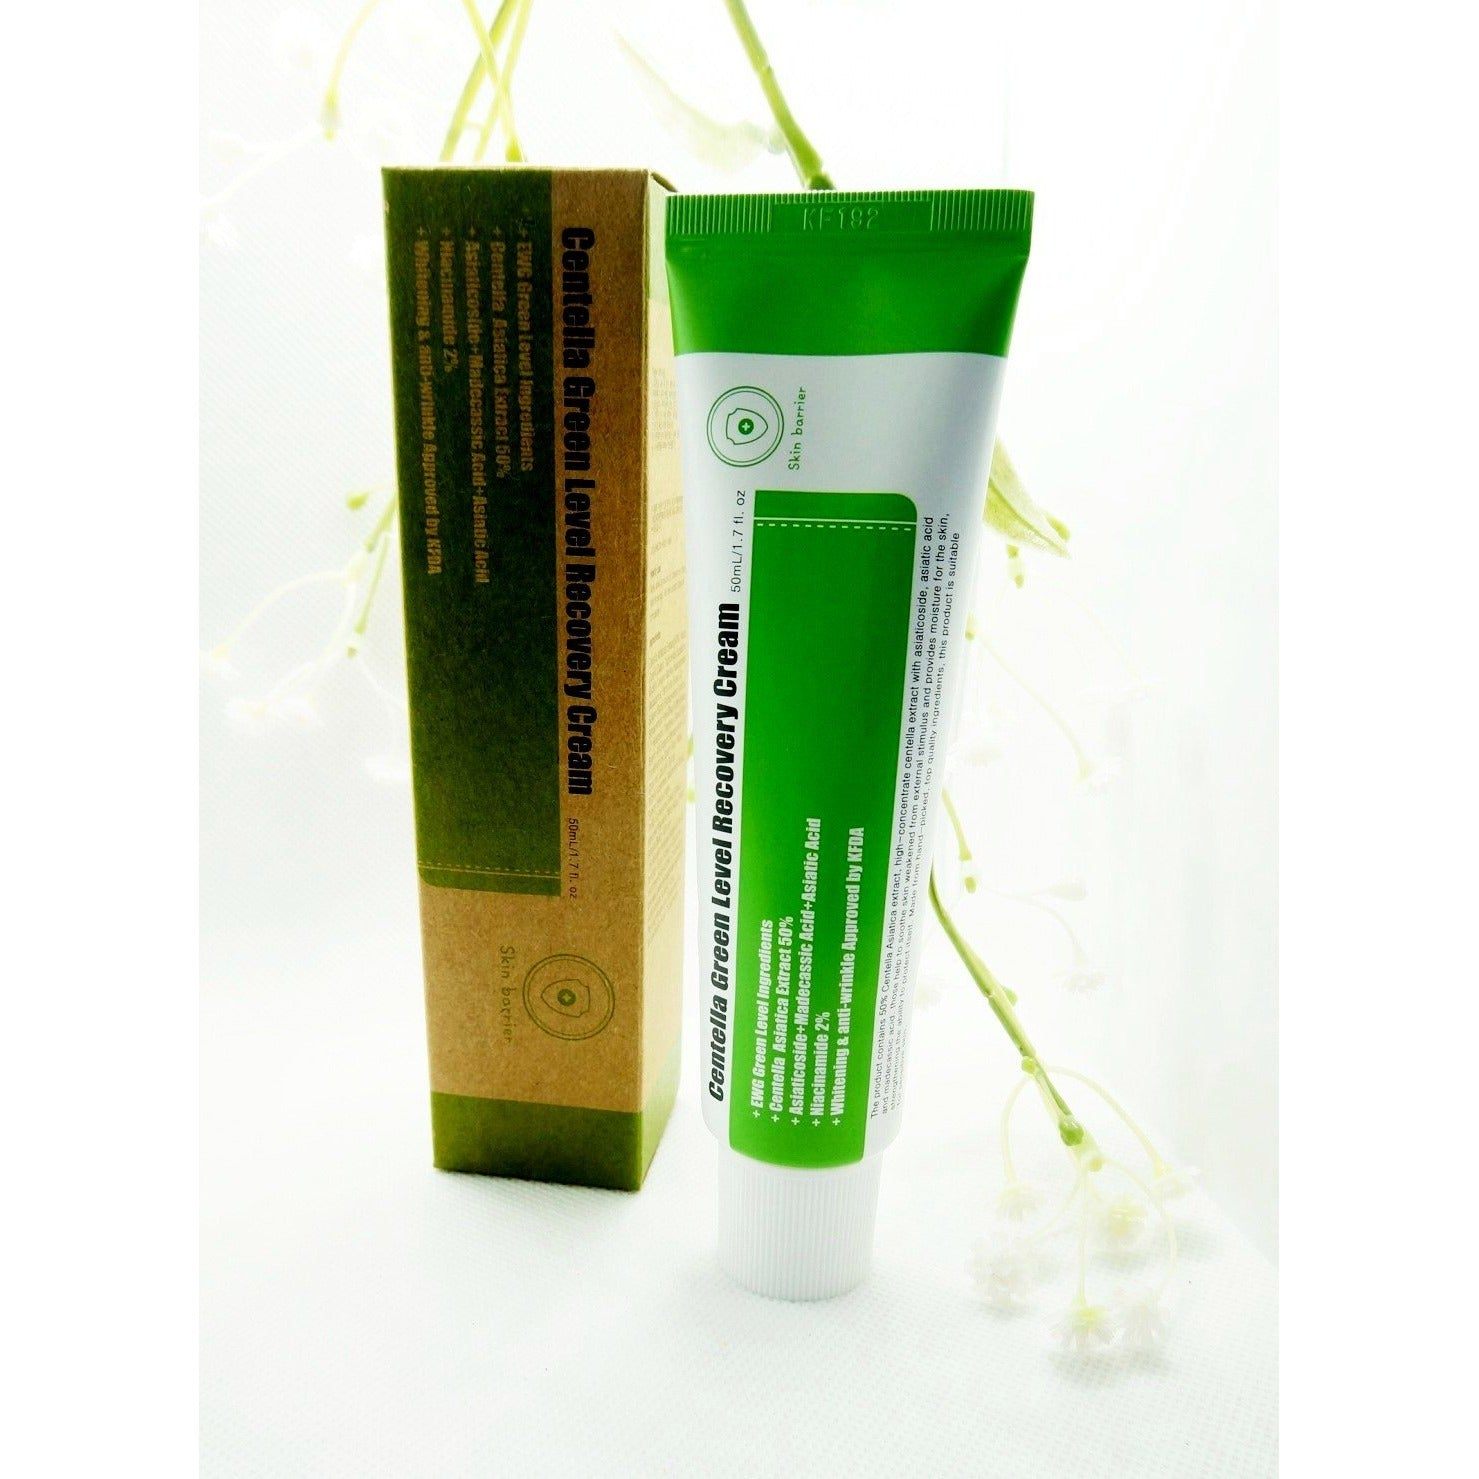 Centella Green Level Recovery Cream by Purito - SKIN.IS